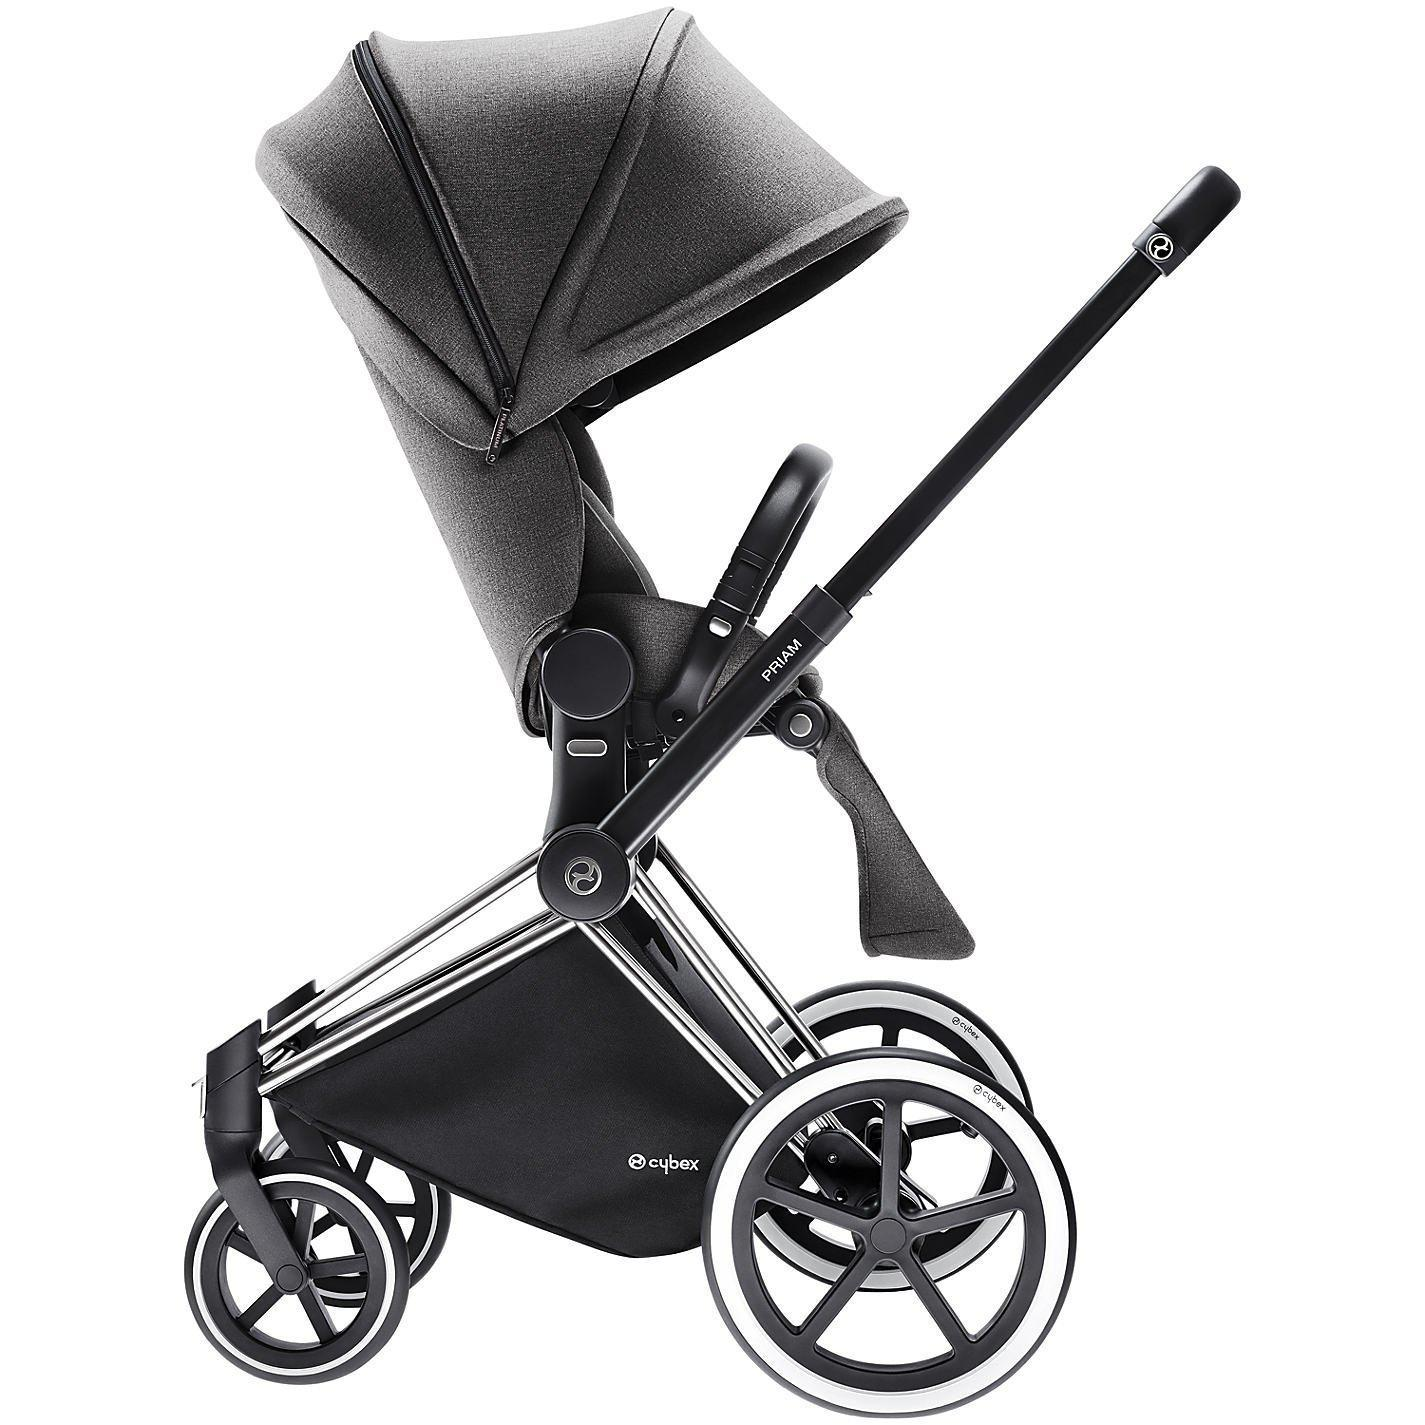 Cybex Baby Priam Luxseat Manhattan Grey ( with chrome trekking frame ) - Cubox Australia